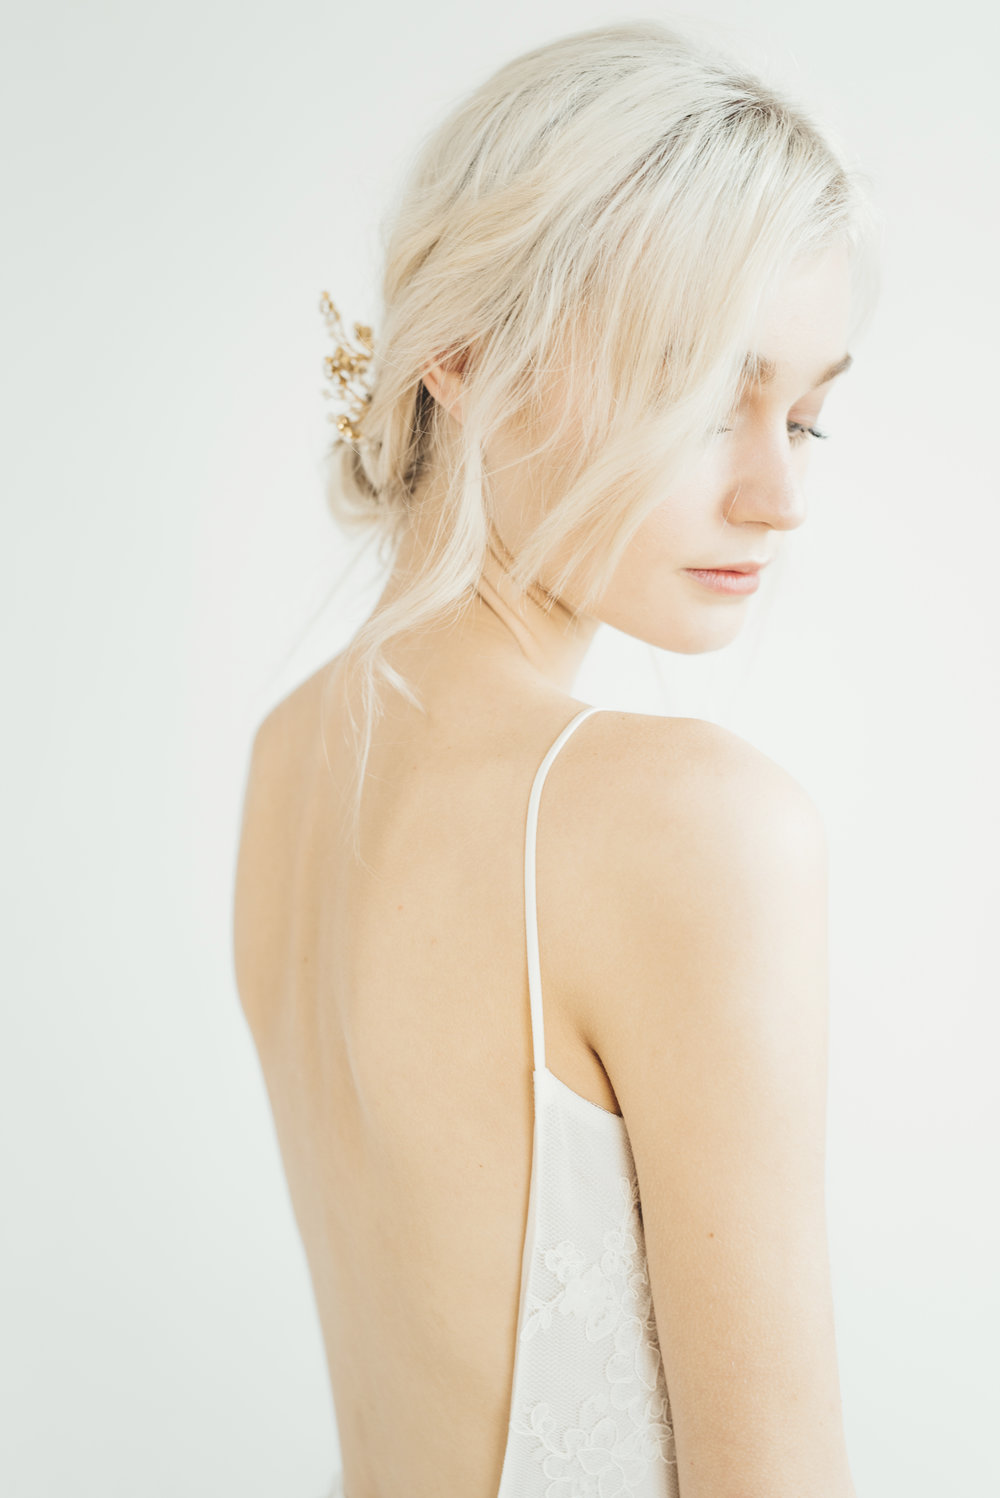 palm house hairpins by emma pilkington dress froack&soul.jpg